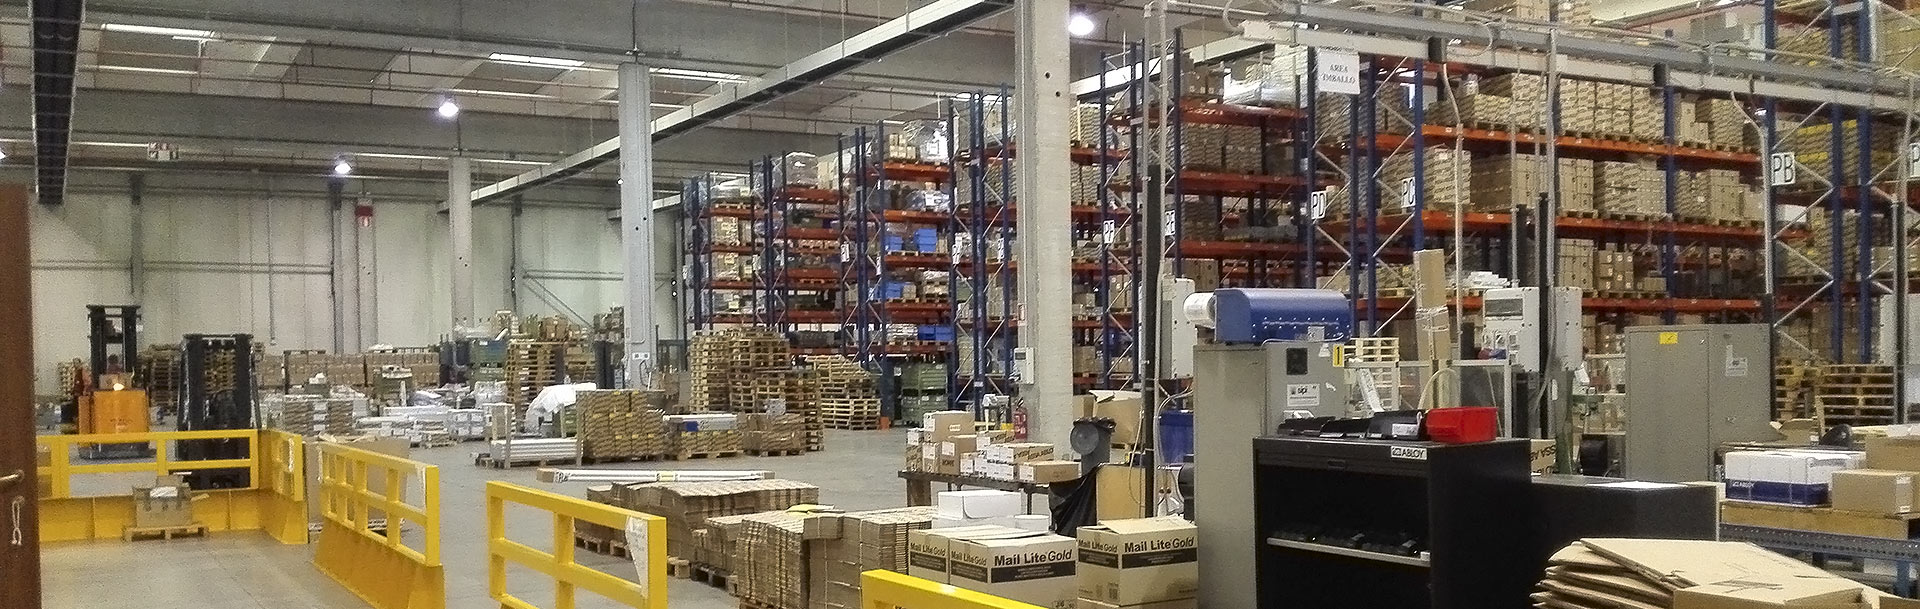 Logistica e-commerce Bologna